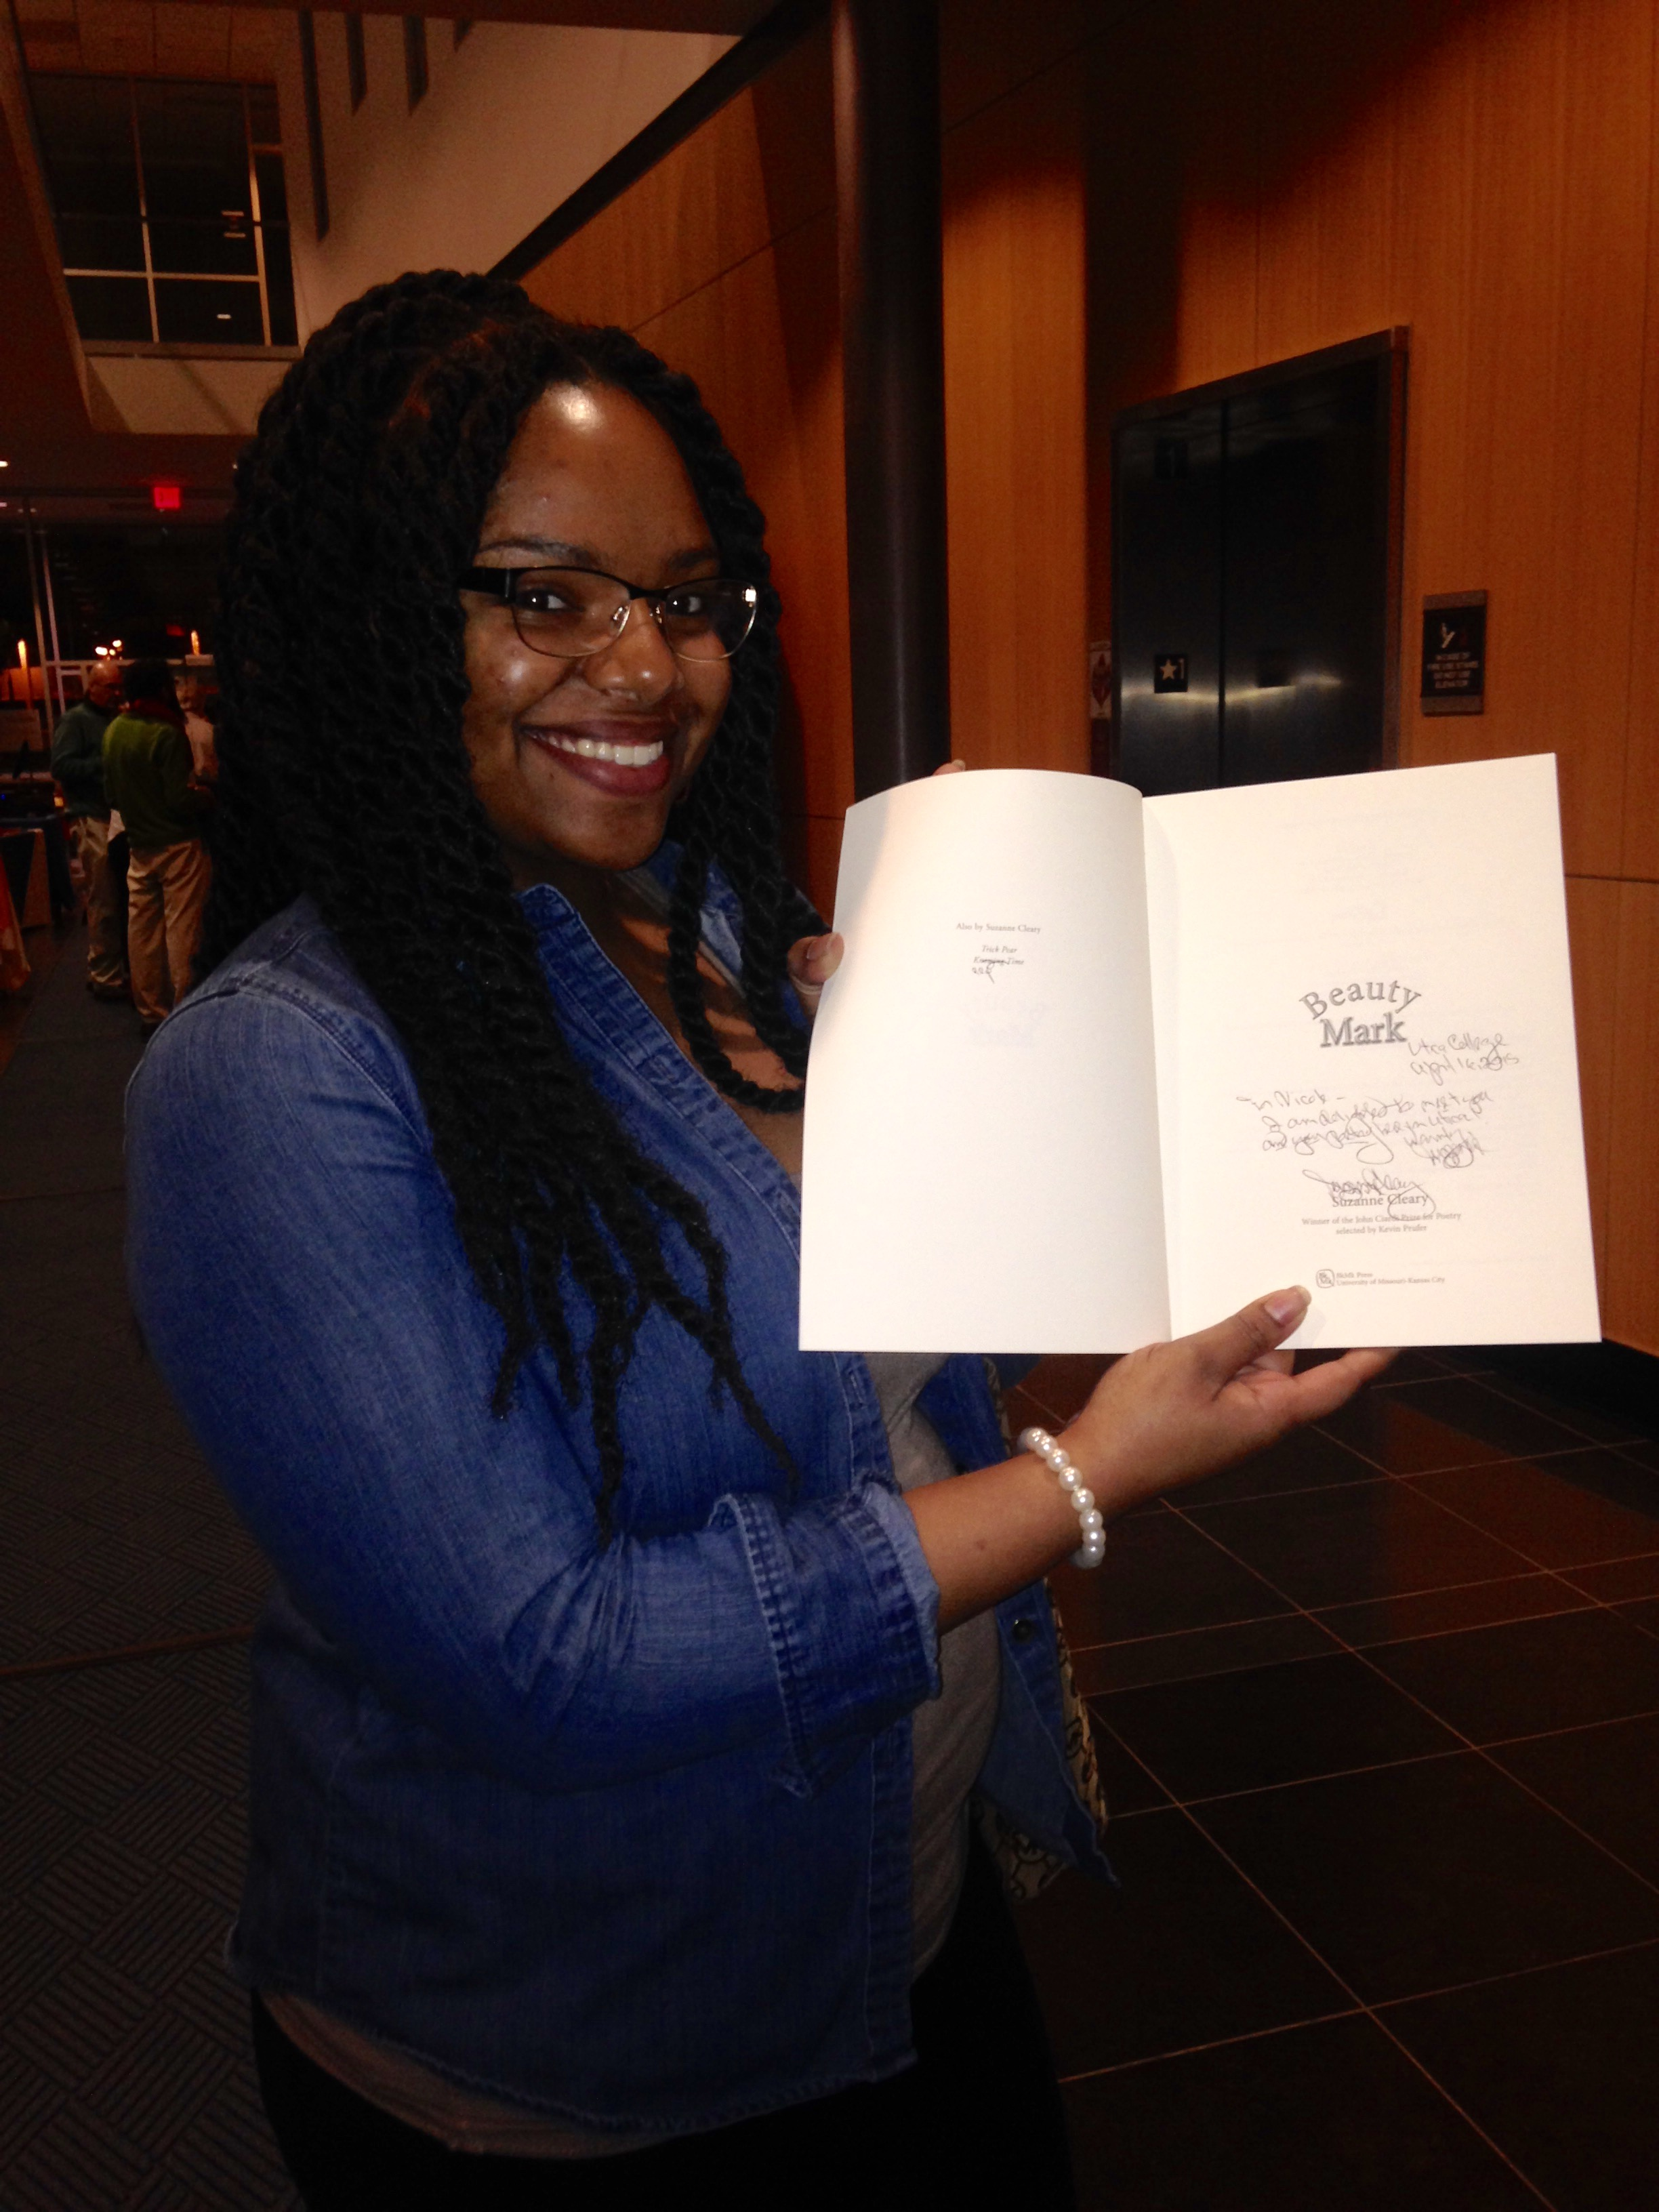 Nicole and her autographed book!